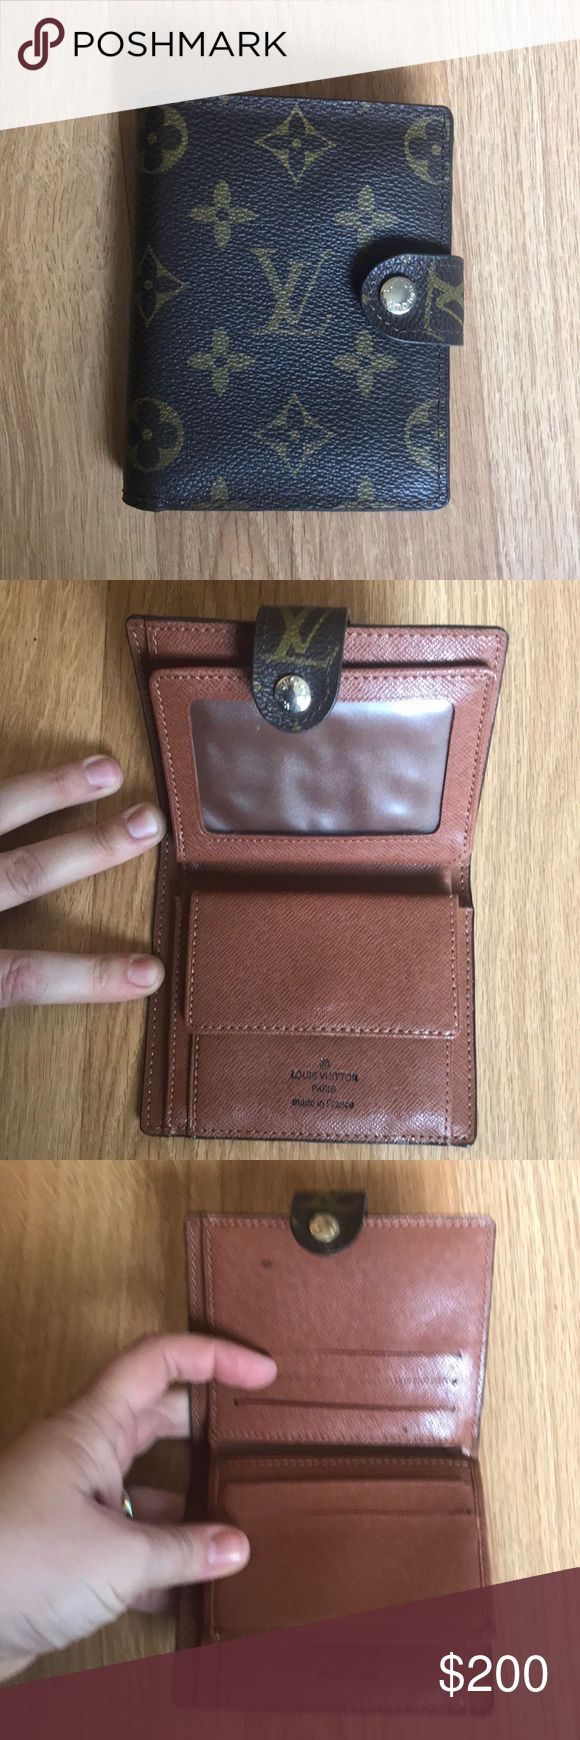 Louis Vuitton small wallet Excellent condition, unused. Real Louis Vuitton wallet. Approximate size 4in x 3 in. Louis Vuitton Accessories